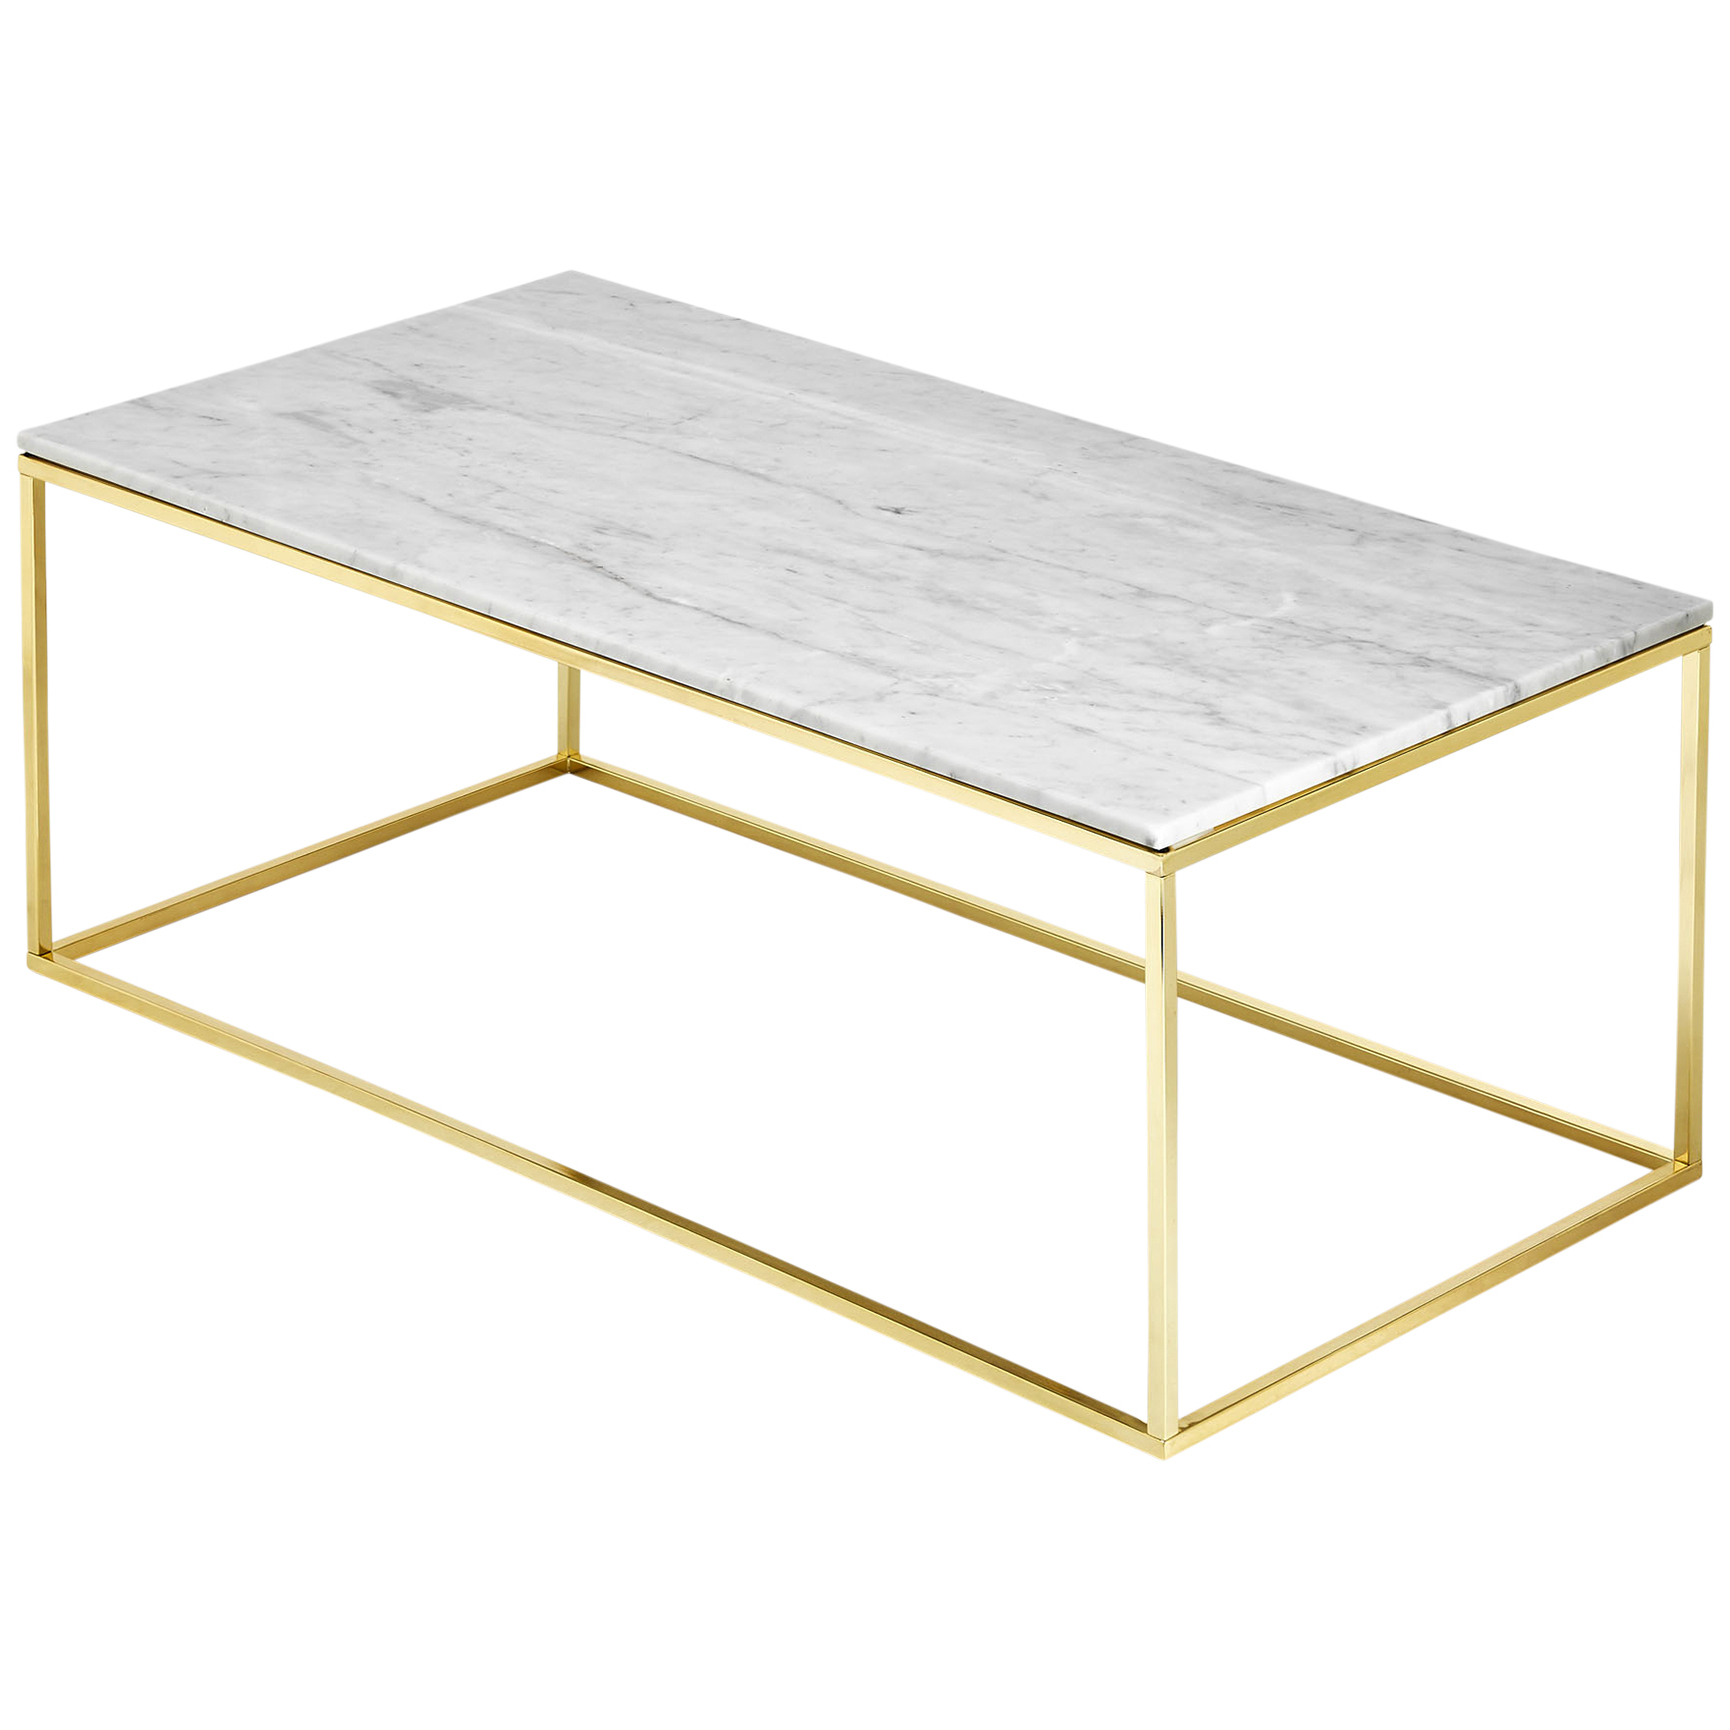 Current Modern Marble Iron Coffee Tables Regarding Estudio Furniture Como White Marble Coffee Table & Reviews (Gallery 5 of 20)